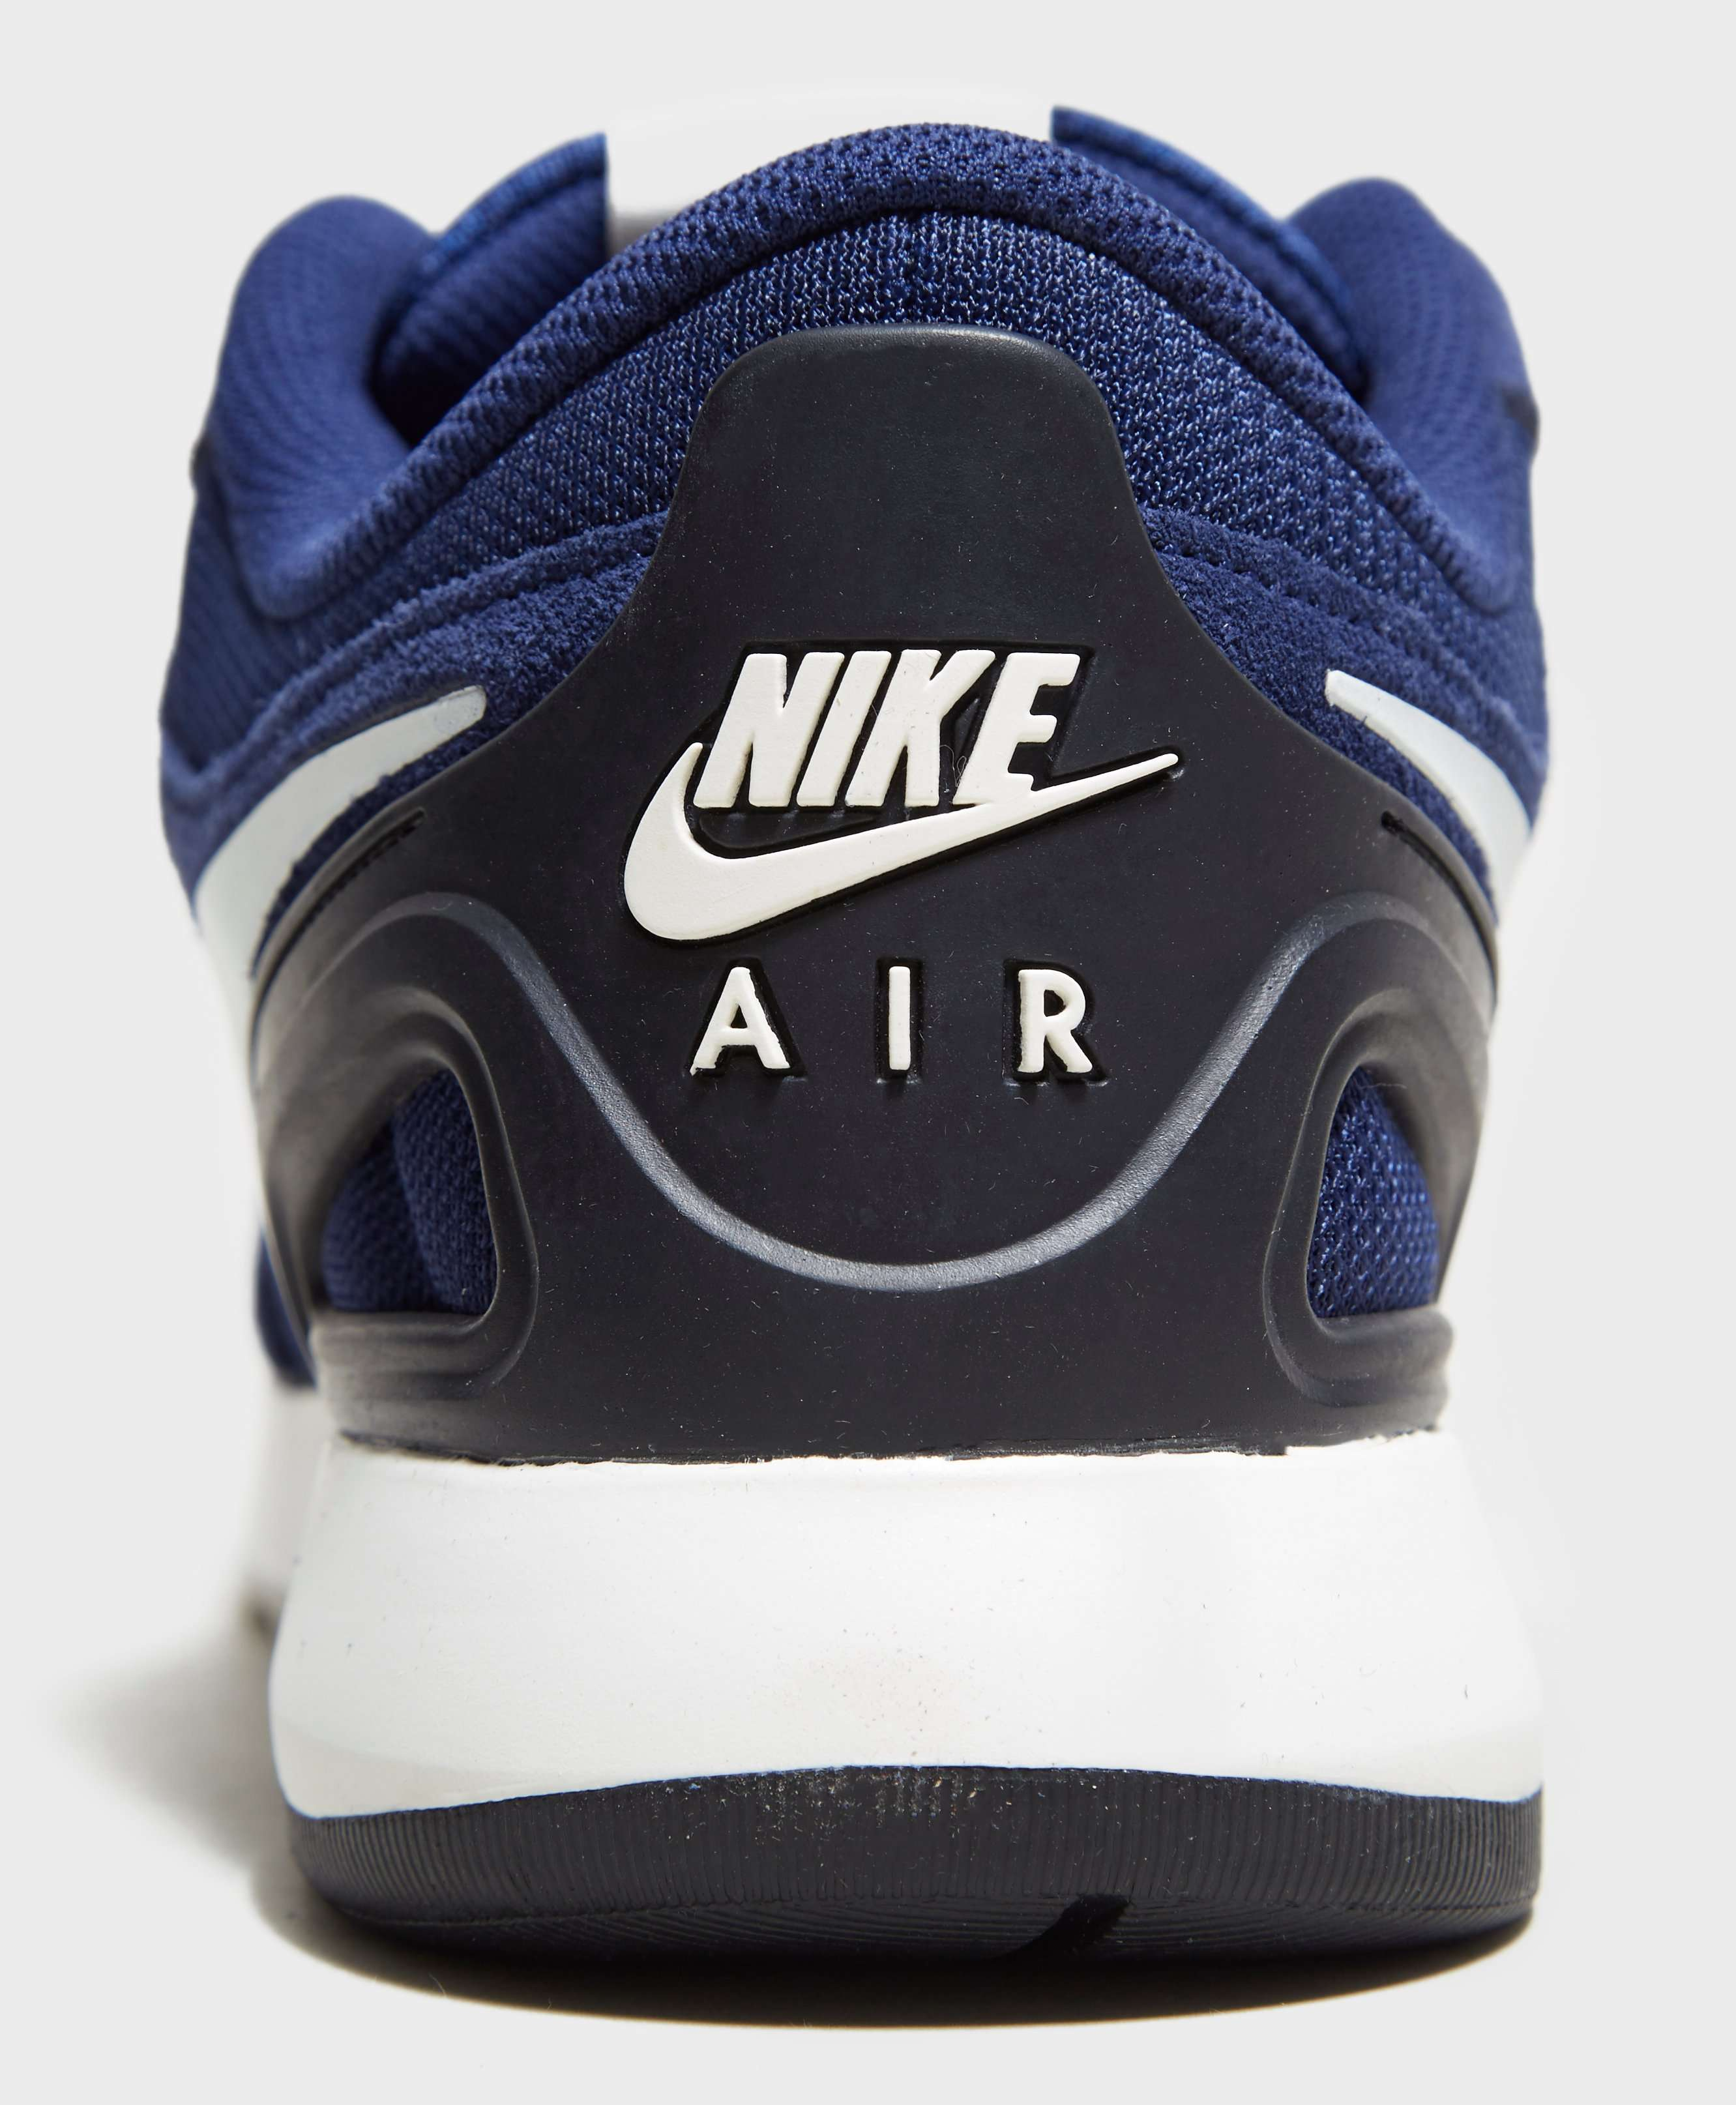 Nike Air Vibenna